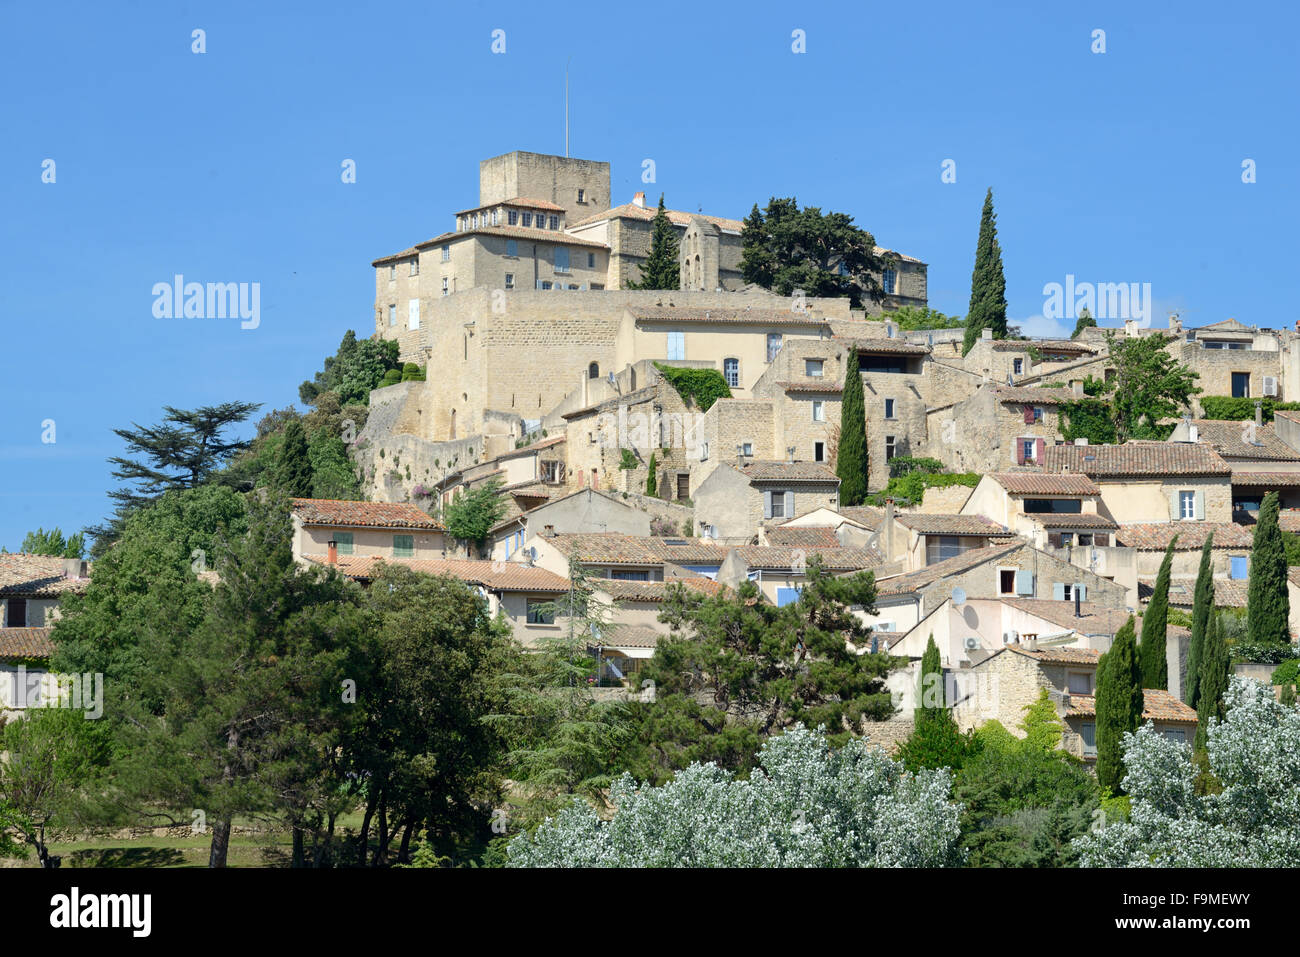 Hilltop Village of Ansouis in the Luberon Regional Park Vaucluse Provence France - Stock Image